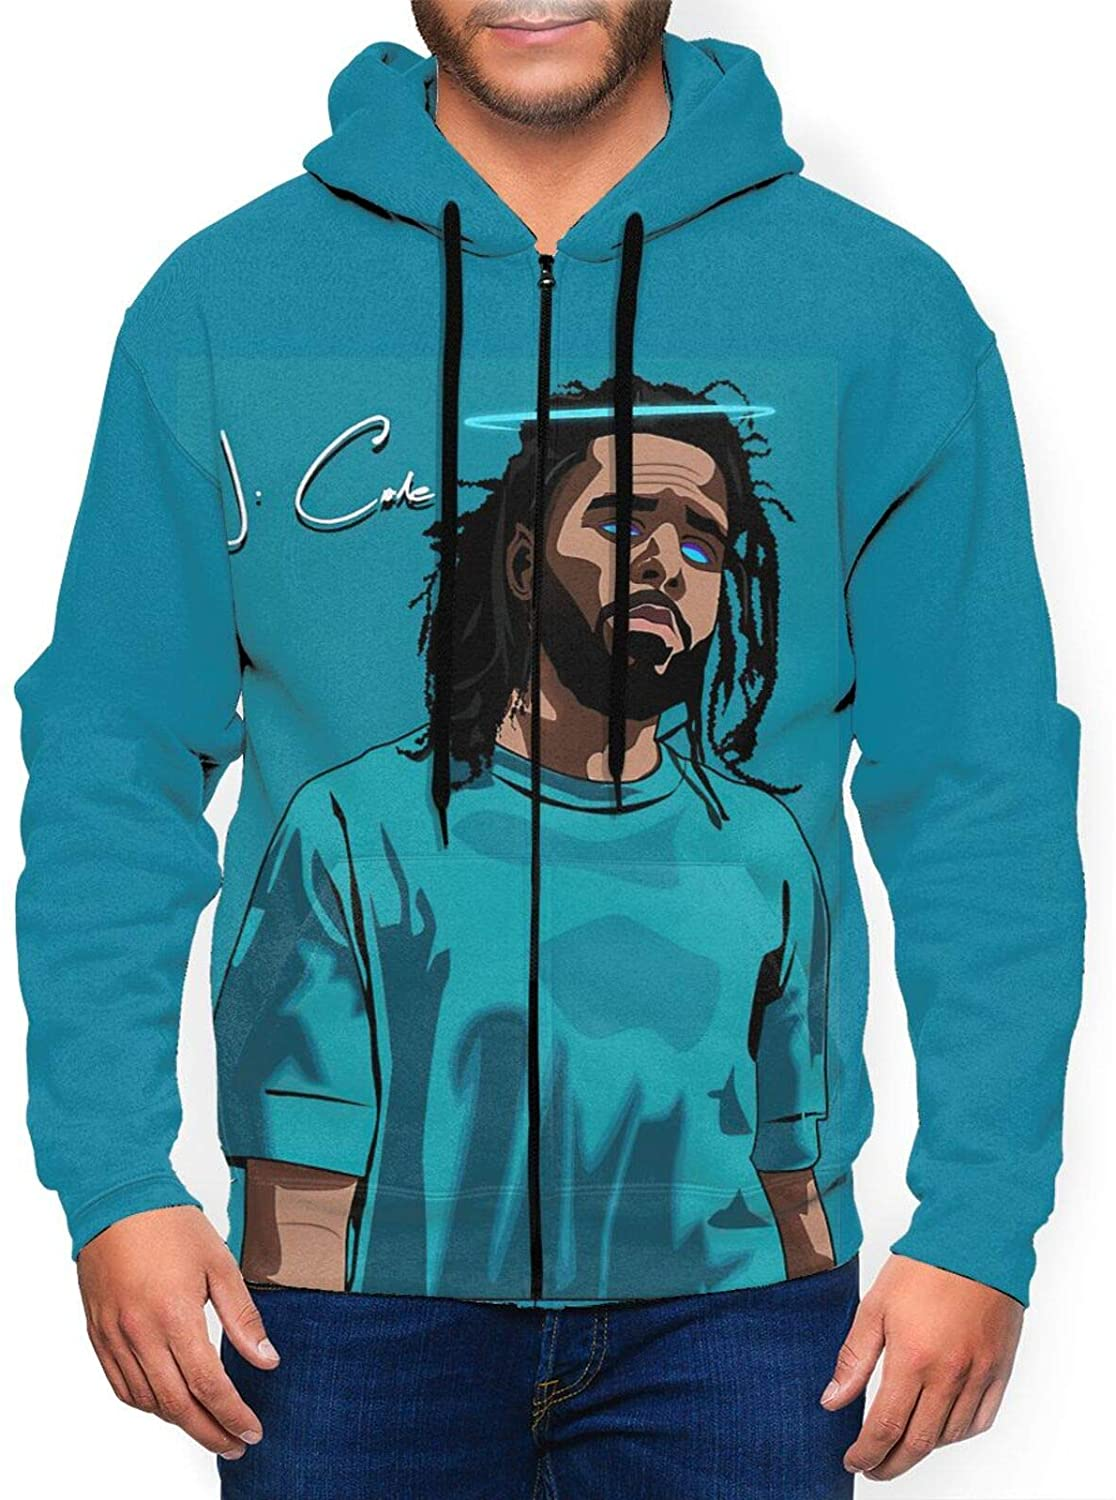 J. Cole Mens Full-Zip Fashion Hoodies Shirts Casual Hooded Sweatshirt Pullover Hooded Blouse